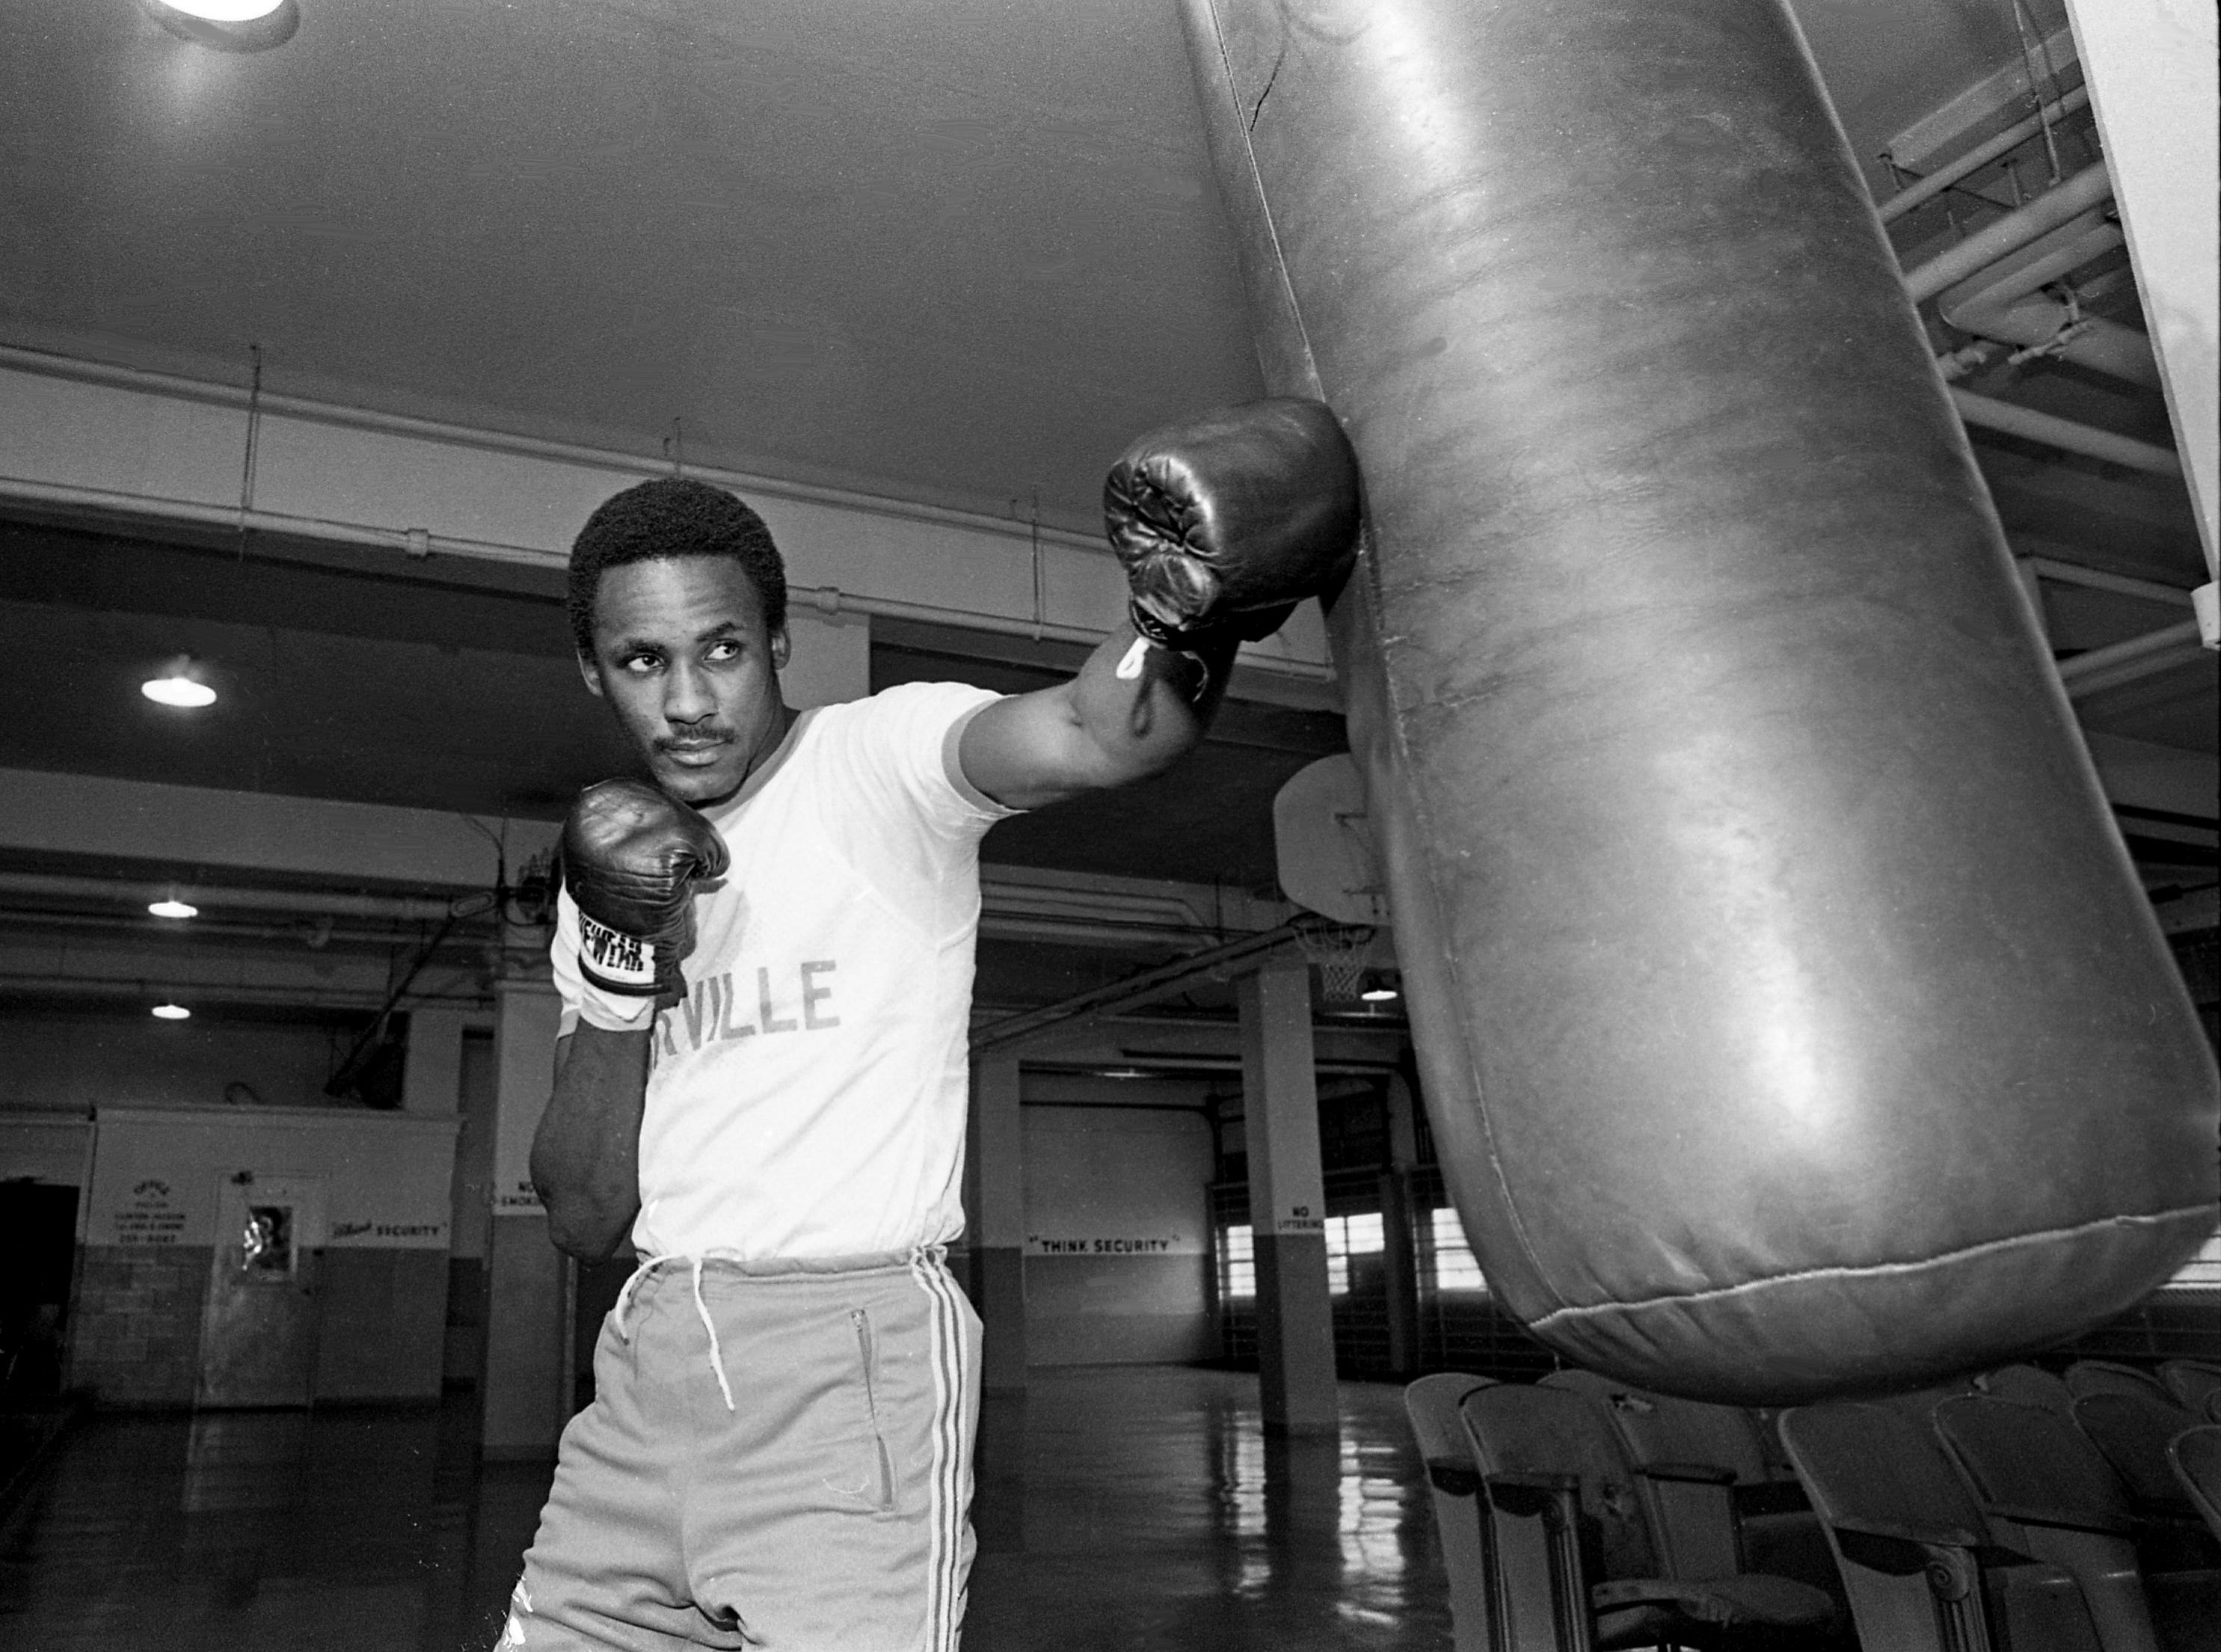 Boxer Mike McCallum, a 22-year-old Jamaican who has been trying to become an American citizen for nearly three years, is working out at the Metro Sheriff Department gym April 4, 1979, for this summer's Pan American Games. McCallum hopes to win a gold medal in boxing for himself and the United States in the 1980 Olympic Games.